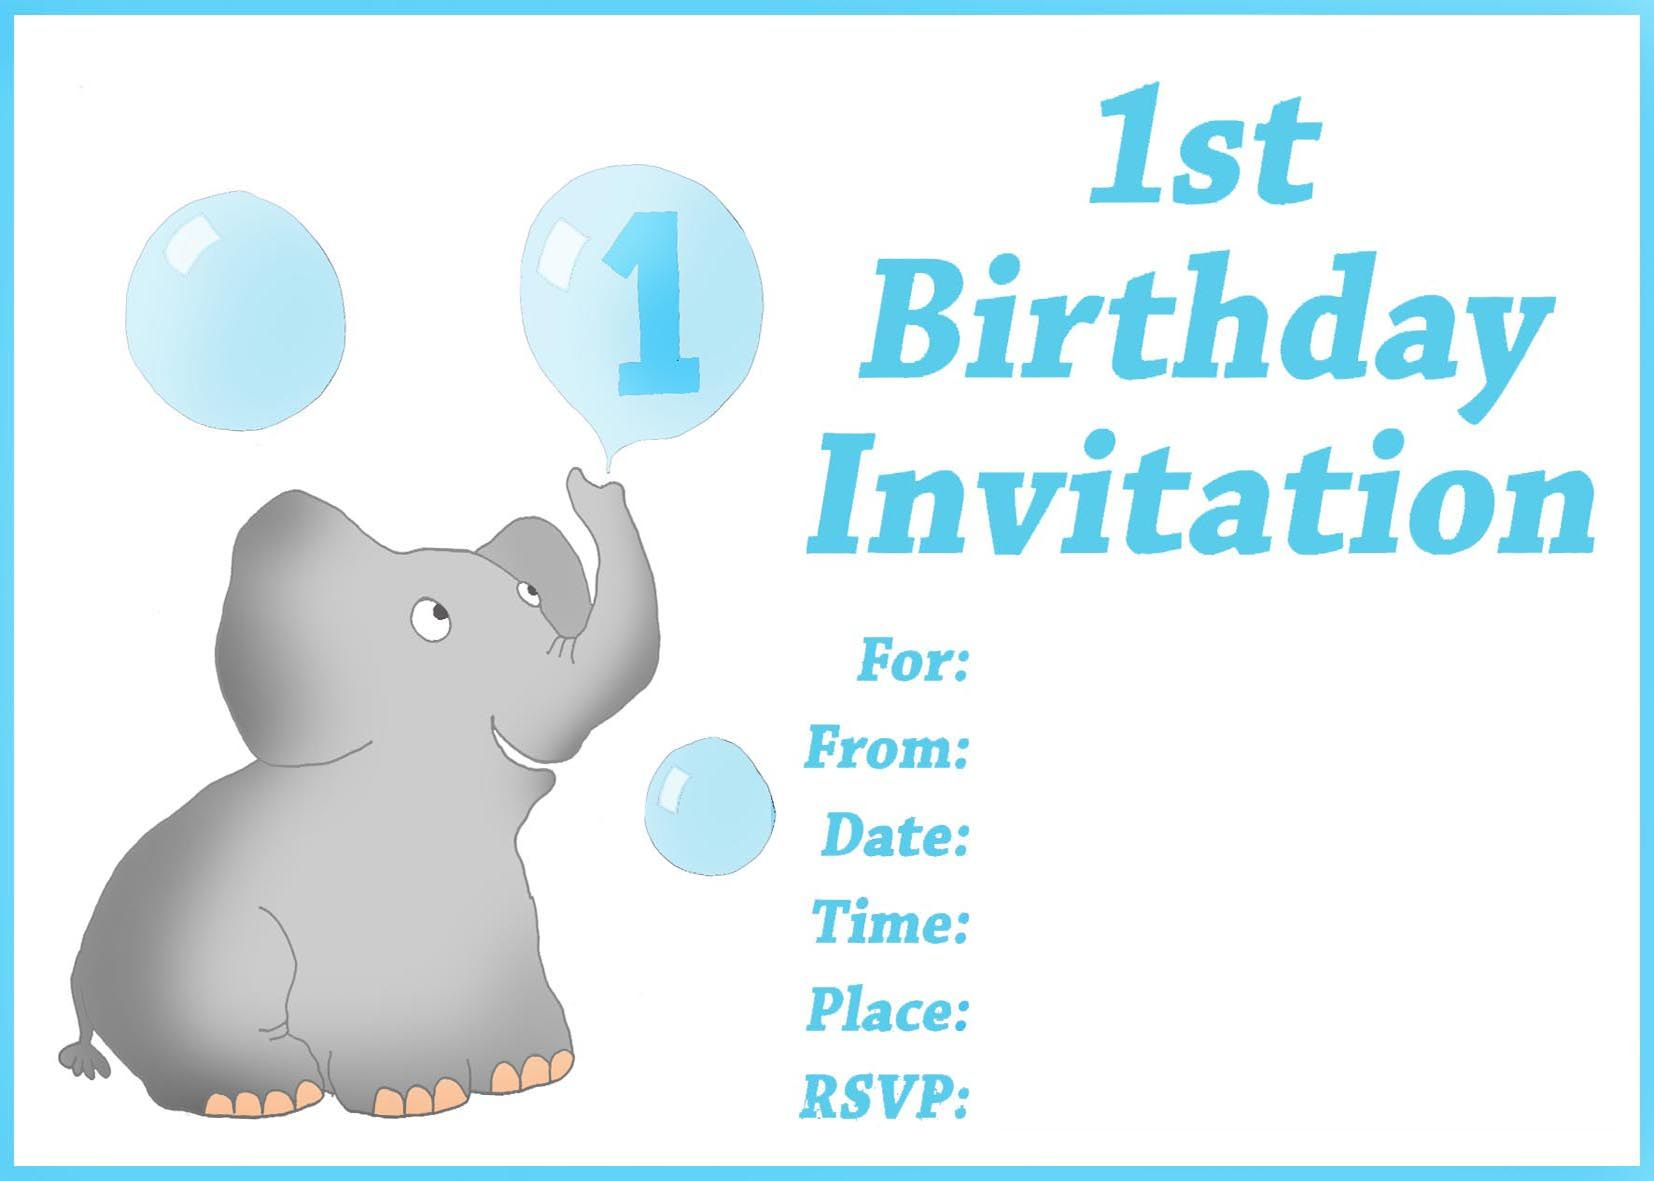 Free Printable 1st Birthday Cards Http 1st Birthday Invitations C Boy Birthday Invitations 1st Birthday Party Invitations Birthday Invitation Card Template